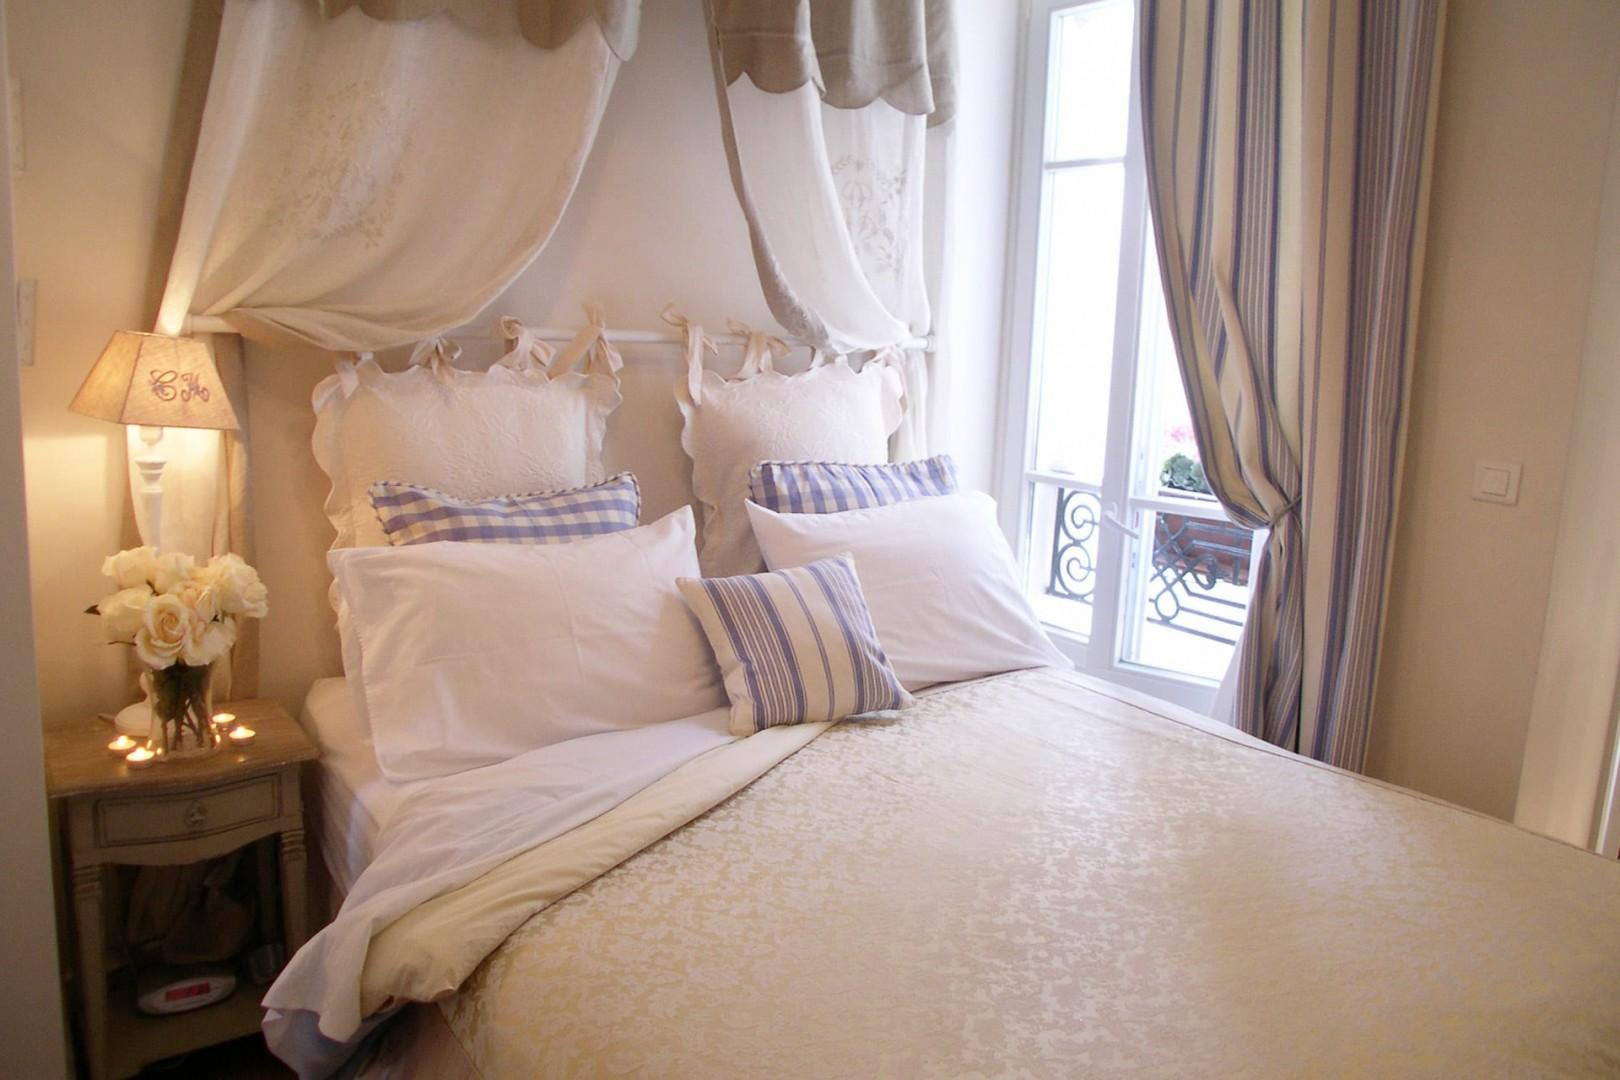 Relax in the beautiful bed with a romantic antique French pelmet.